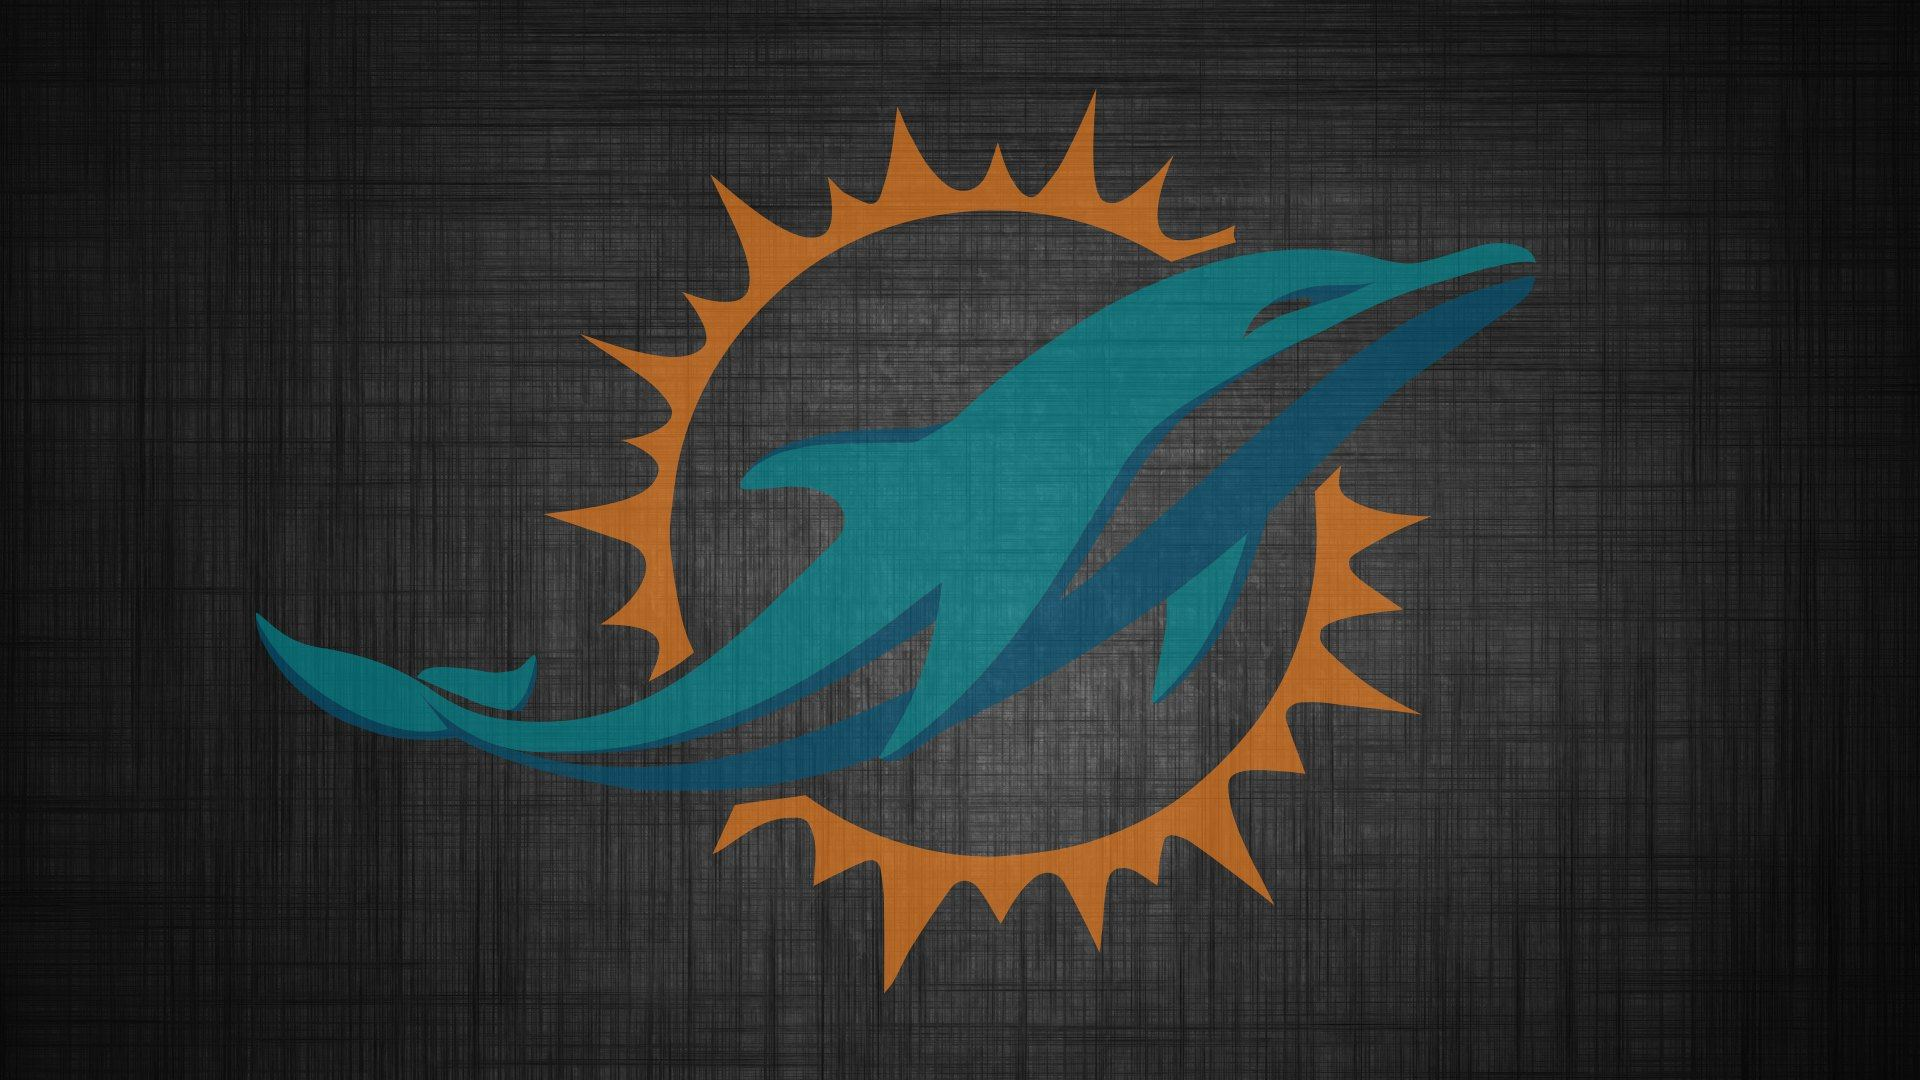 Miami dolphins wallpapers archives - Miami dolphins wallpaper ...